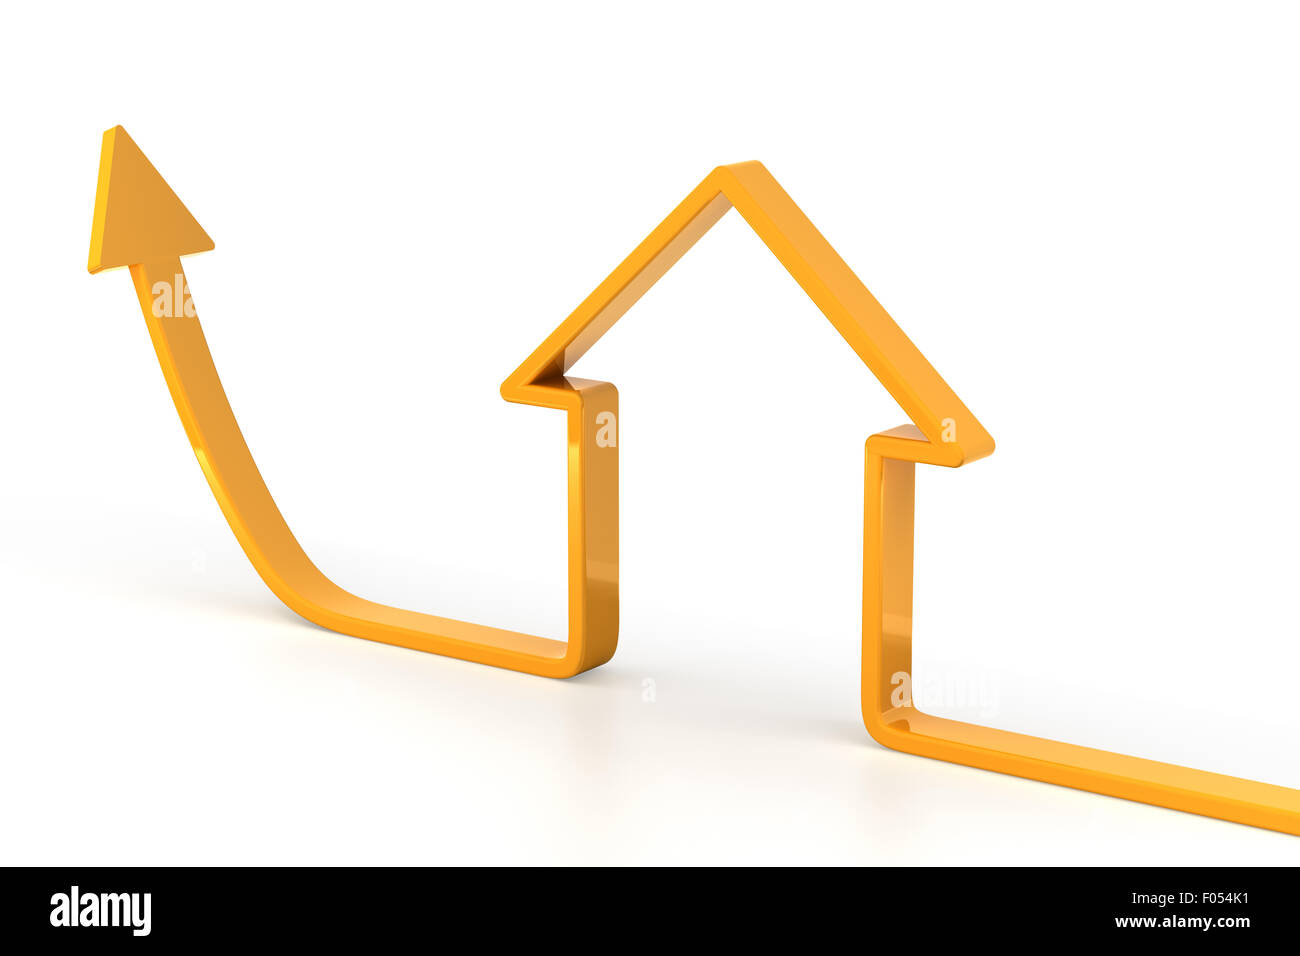 Rising arrow shaped like a house - Stock Image